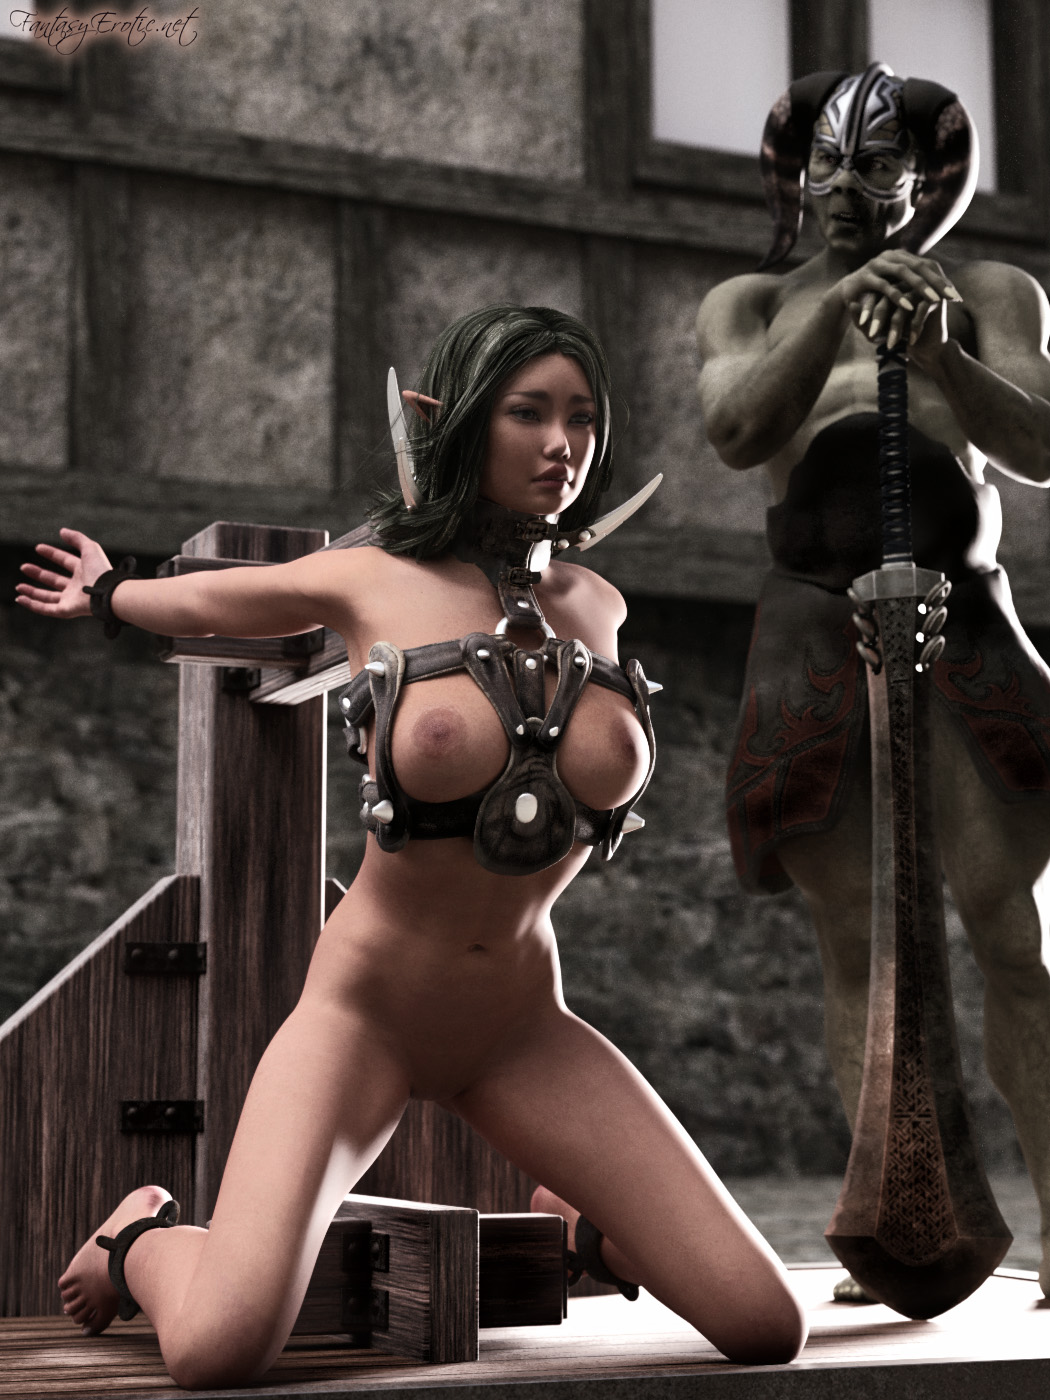 Porn warrior erotic female